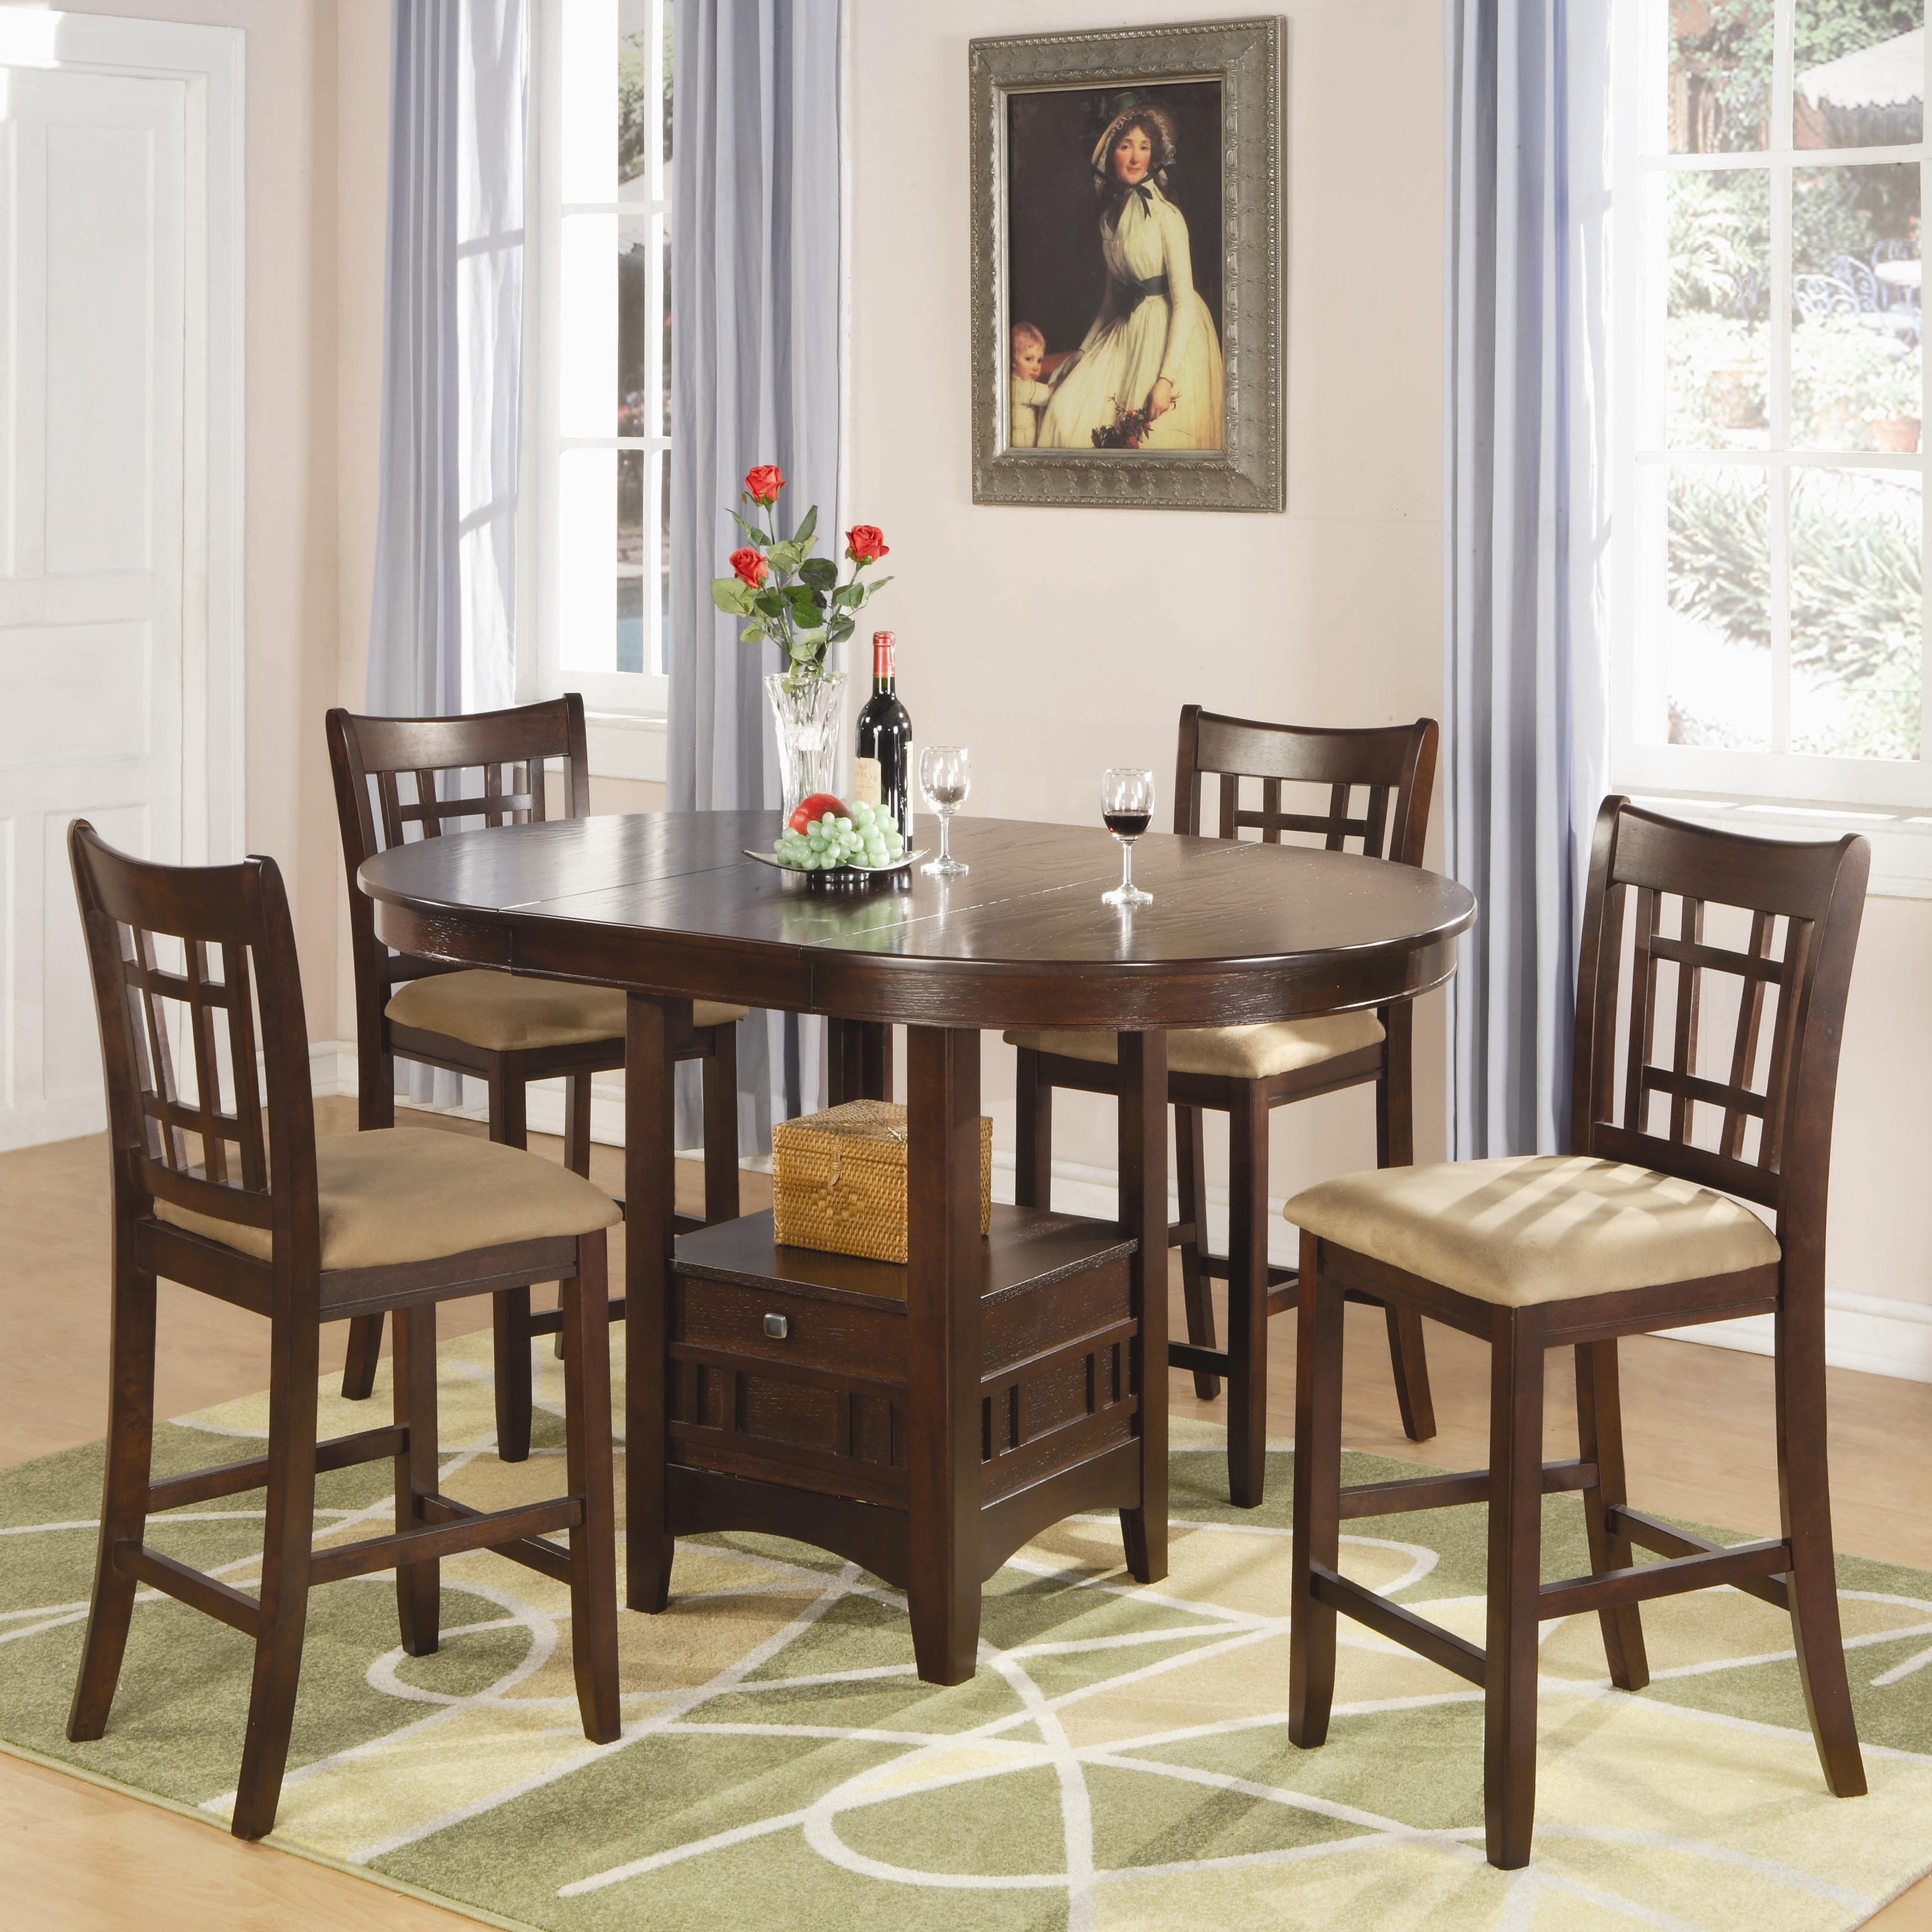 Non Wood Dining Tables Regarding Preferred Coaster – Find A Local Furniture Store With Coaster Fine Furniture (View 24 of 25)